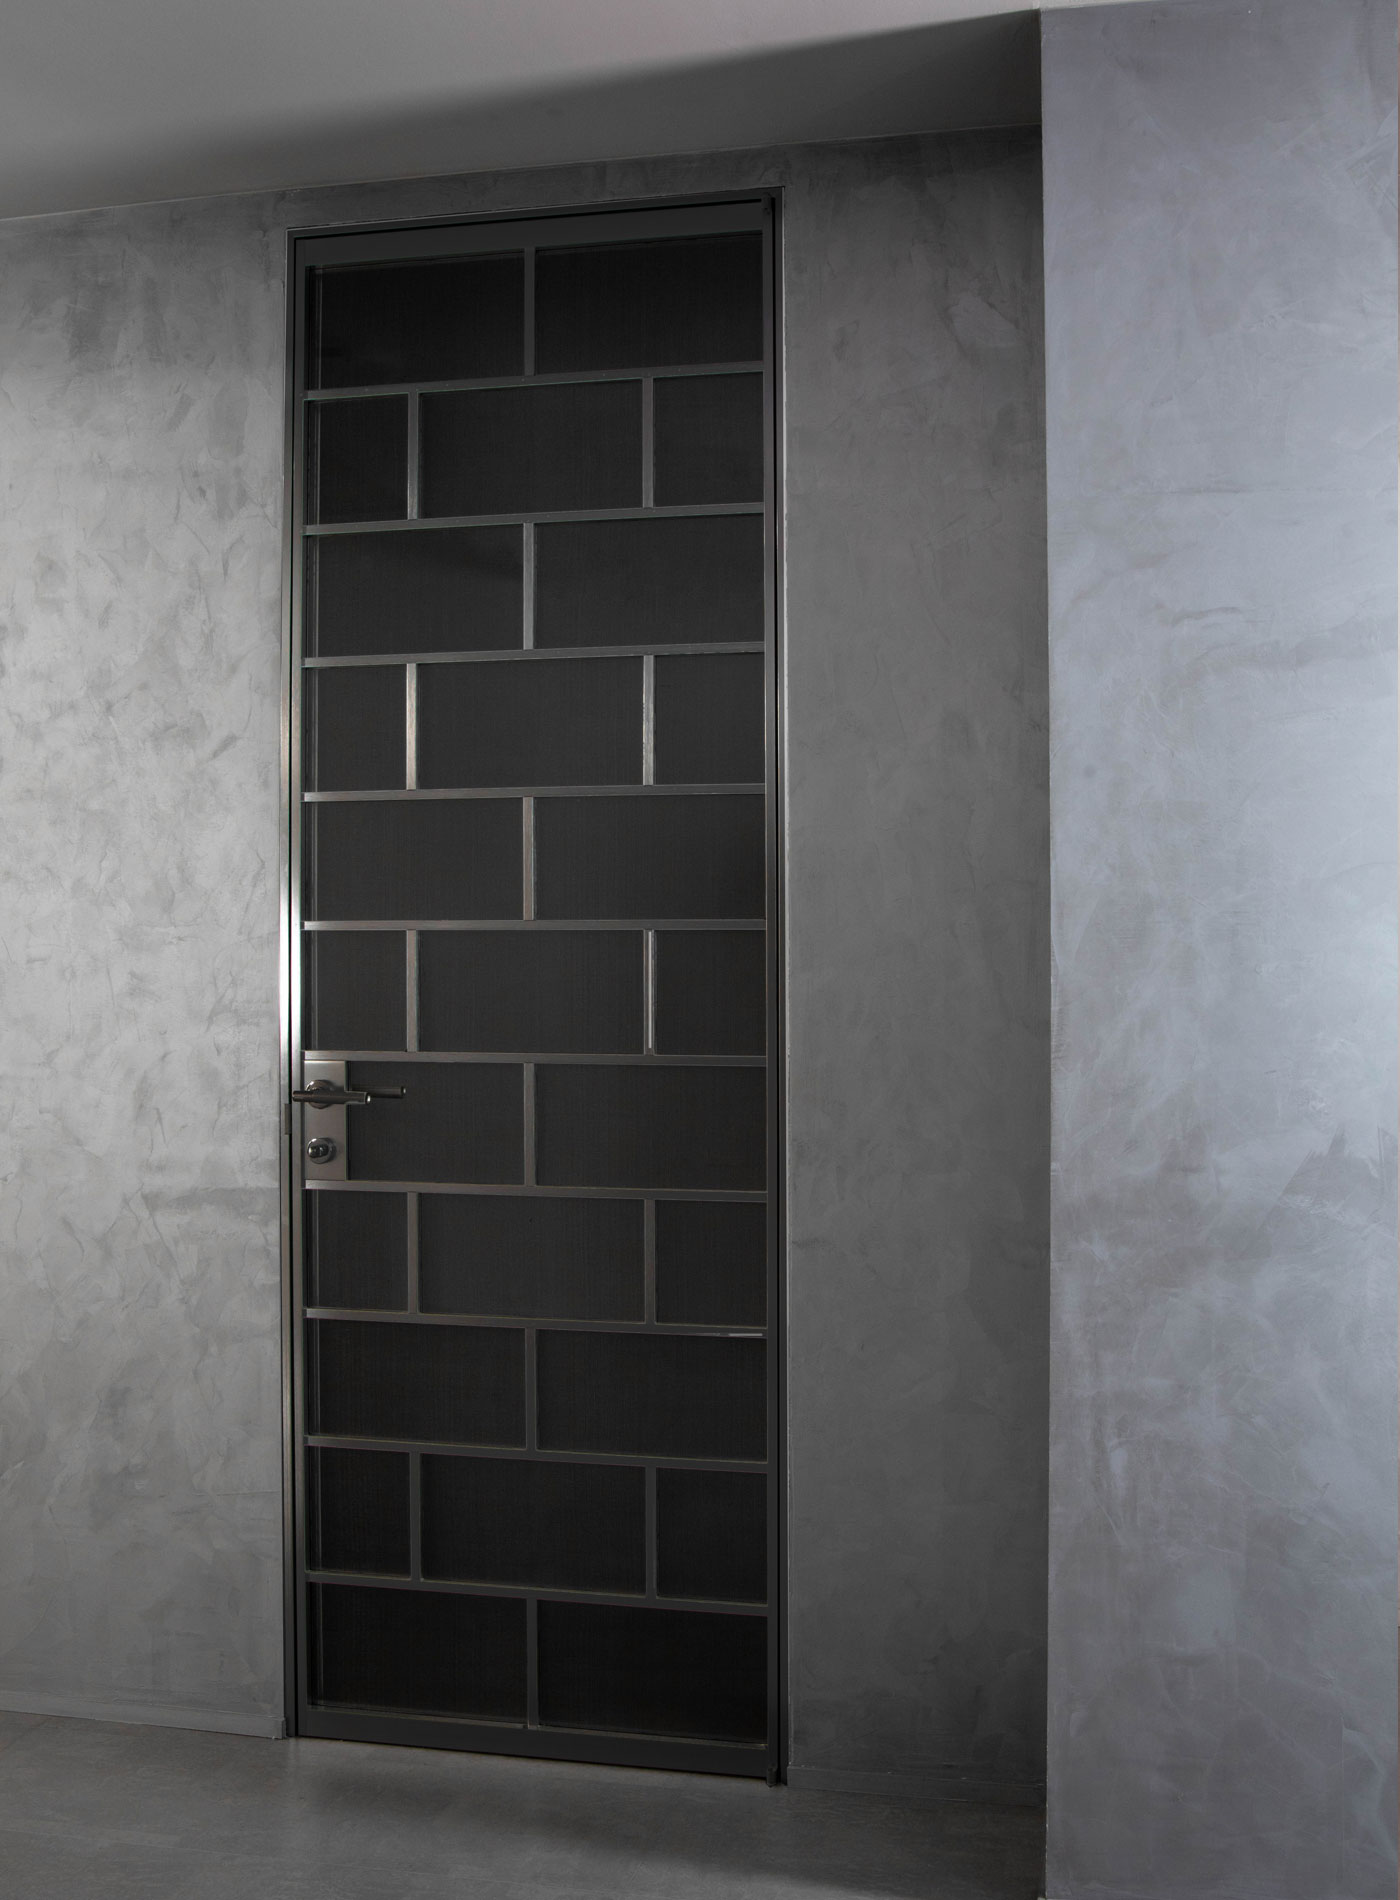 Planus Quattro Lacunaria Black finishing